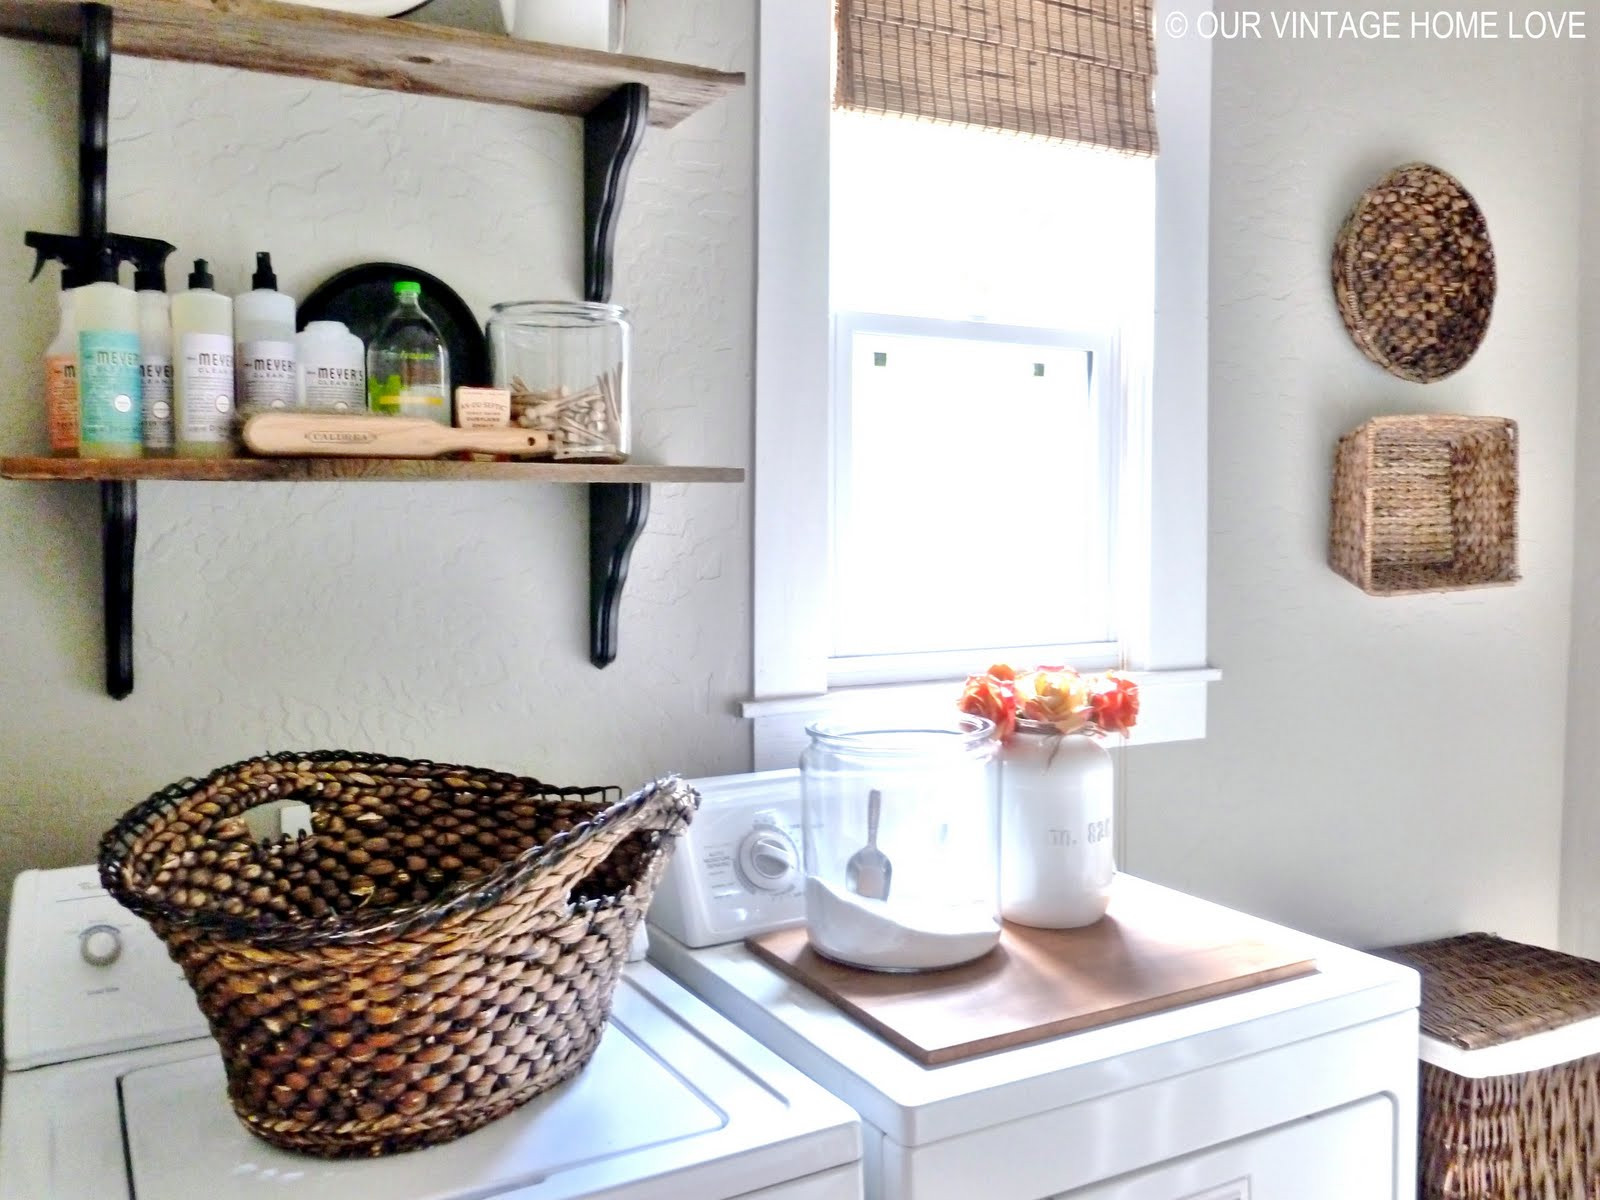 Best ideas about Laundry Room Decor Ideas . Save or Pin vintage home love Laundry Room Ideas and a Vintage Now.